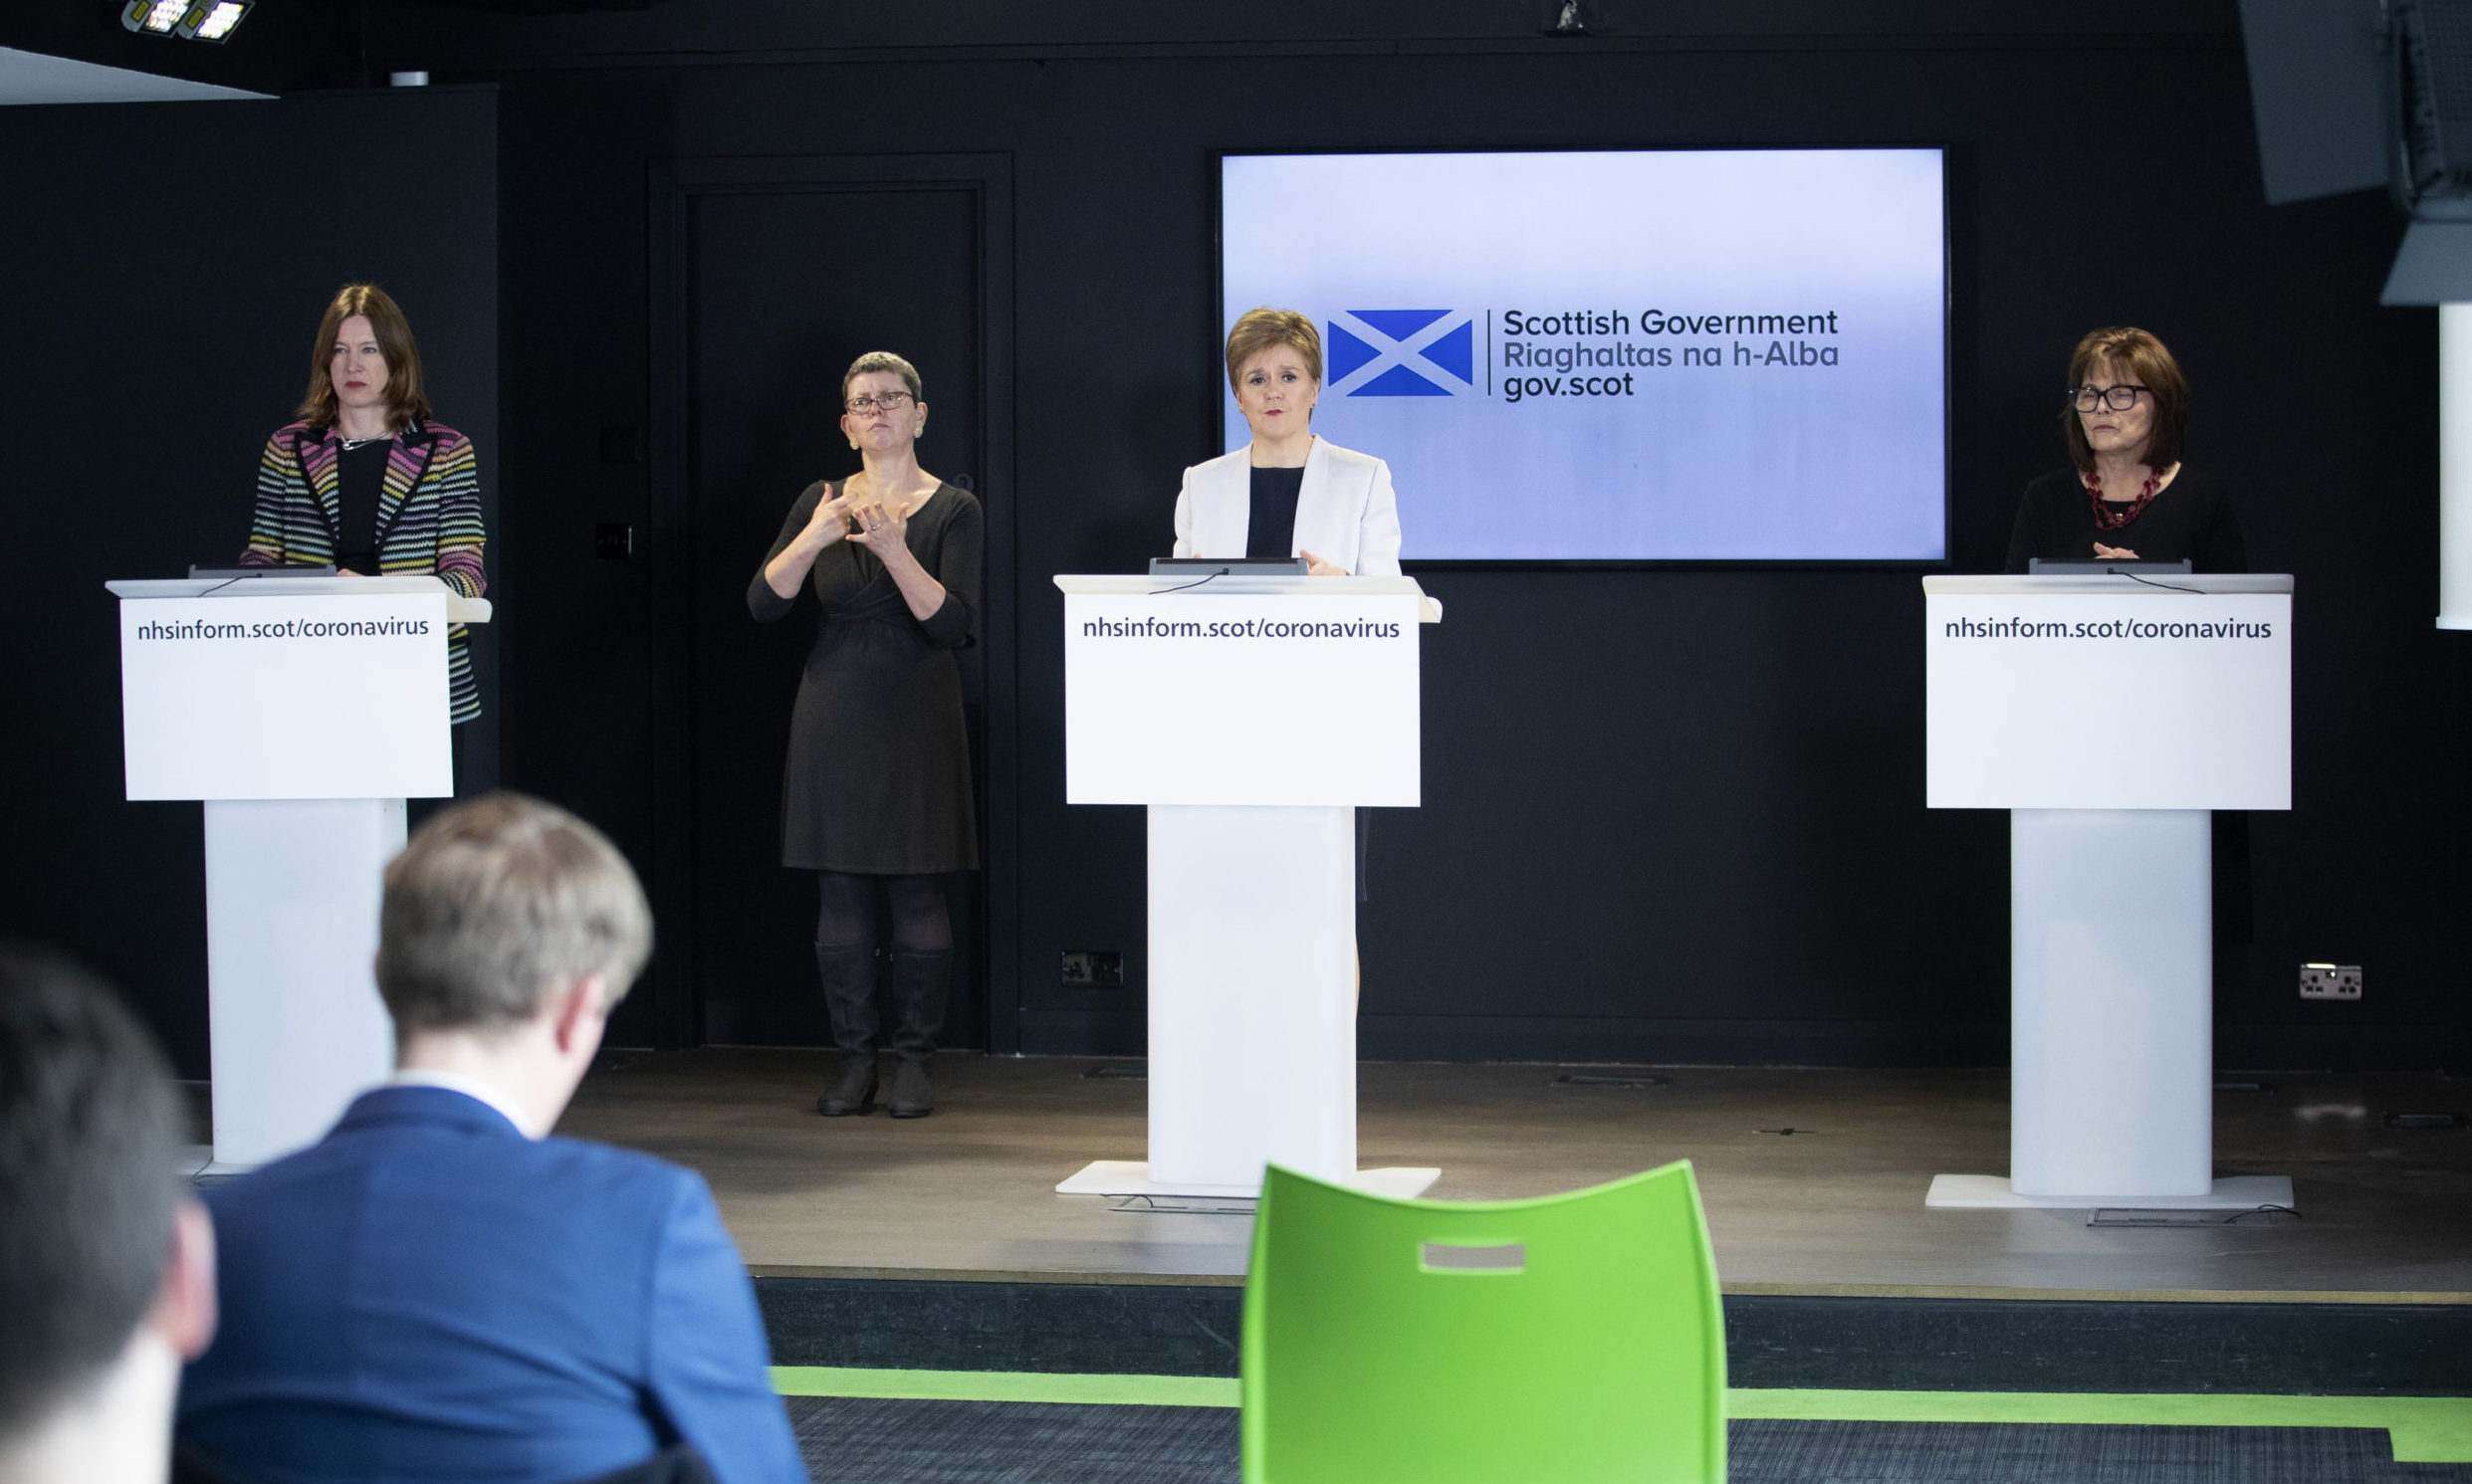 Dr Catherine Calderwood, Nicola Sturgeon and Jeane Freeman during the briefing on Thursday.